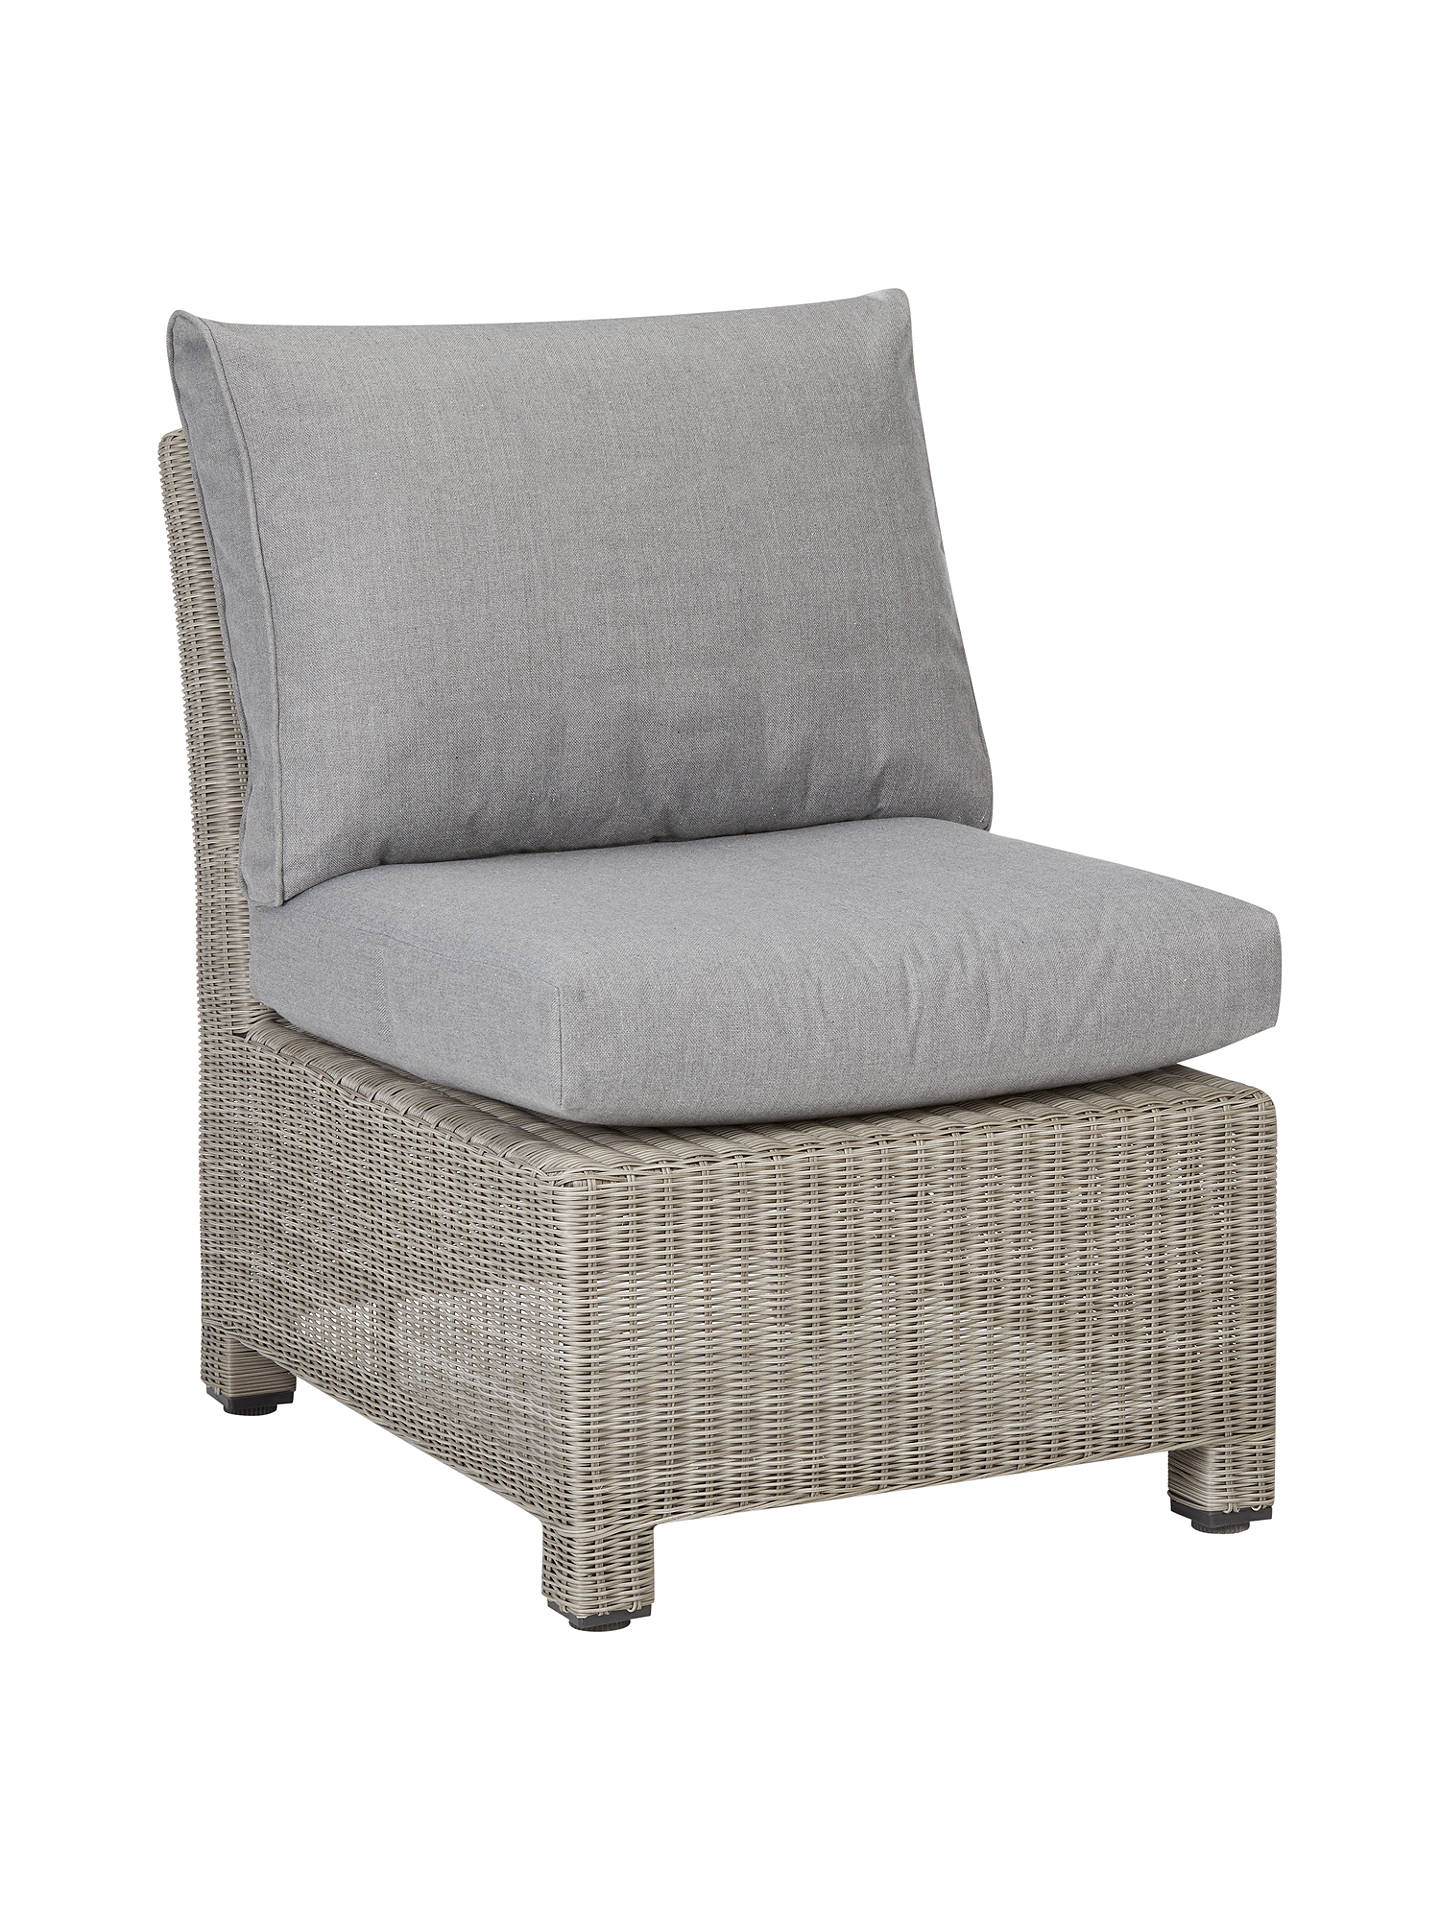 BuyJohn Lewis & Partners Dante Outdoor Modular Middle Chair Unit, Grey Online at johnlewis.com